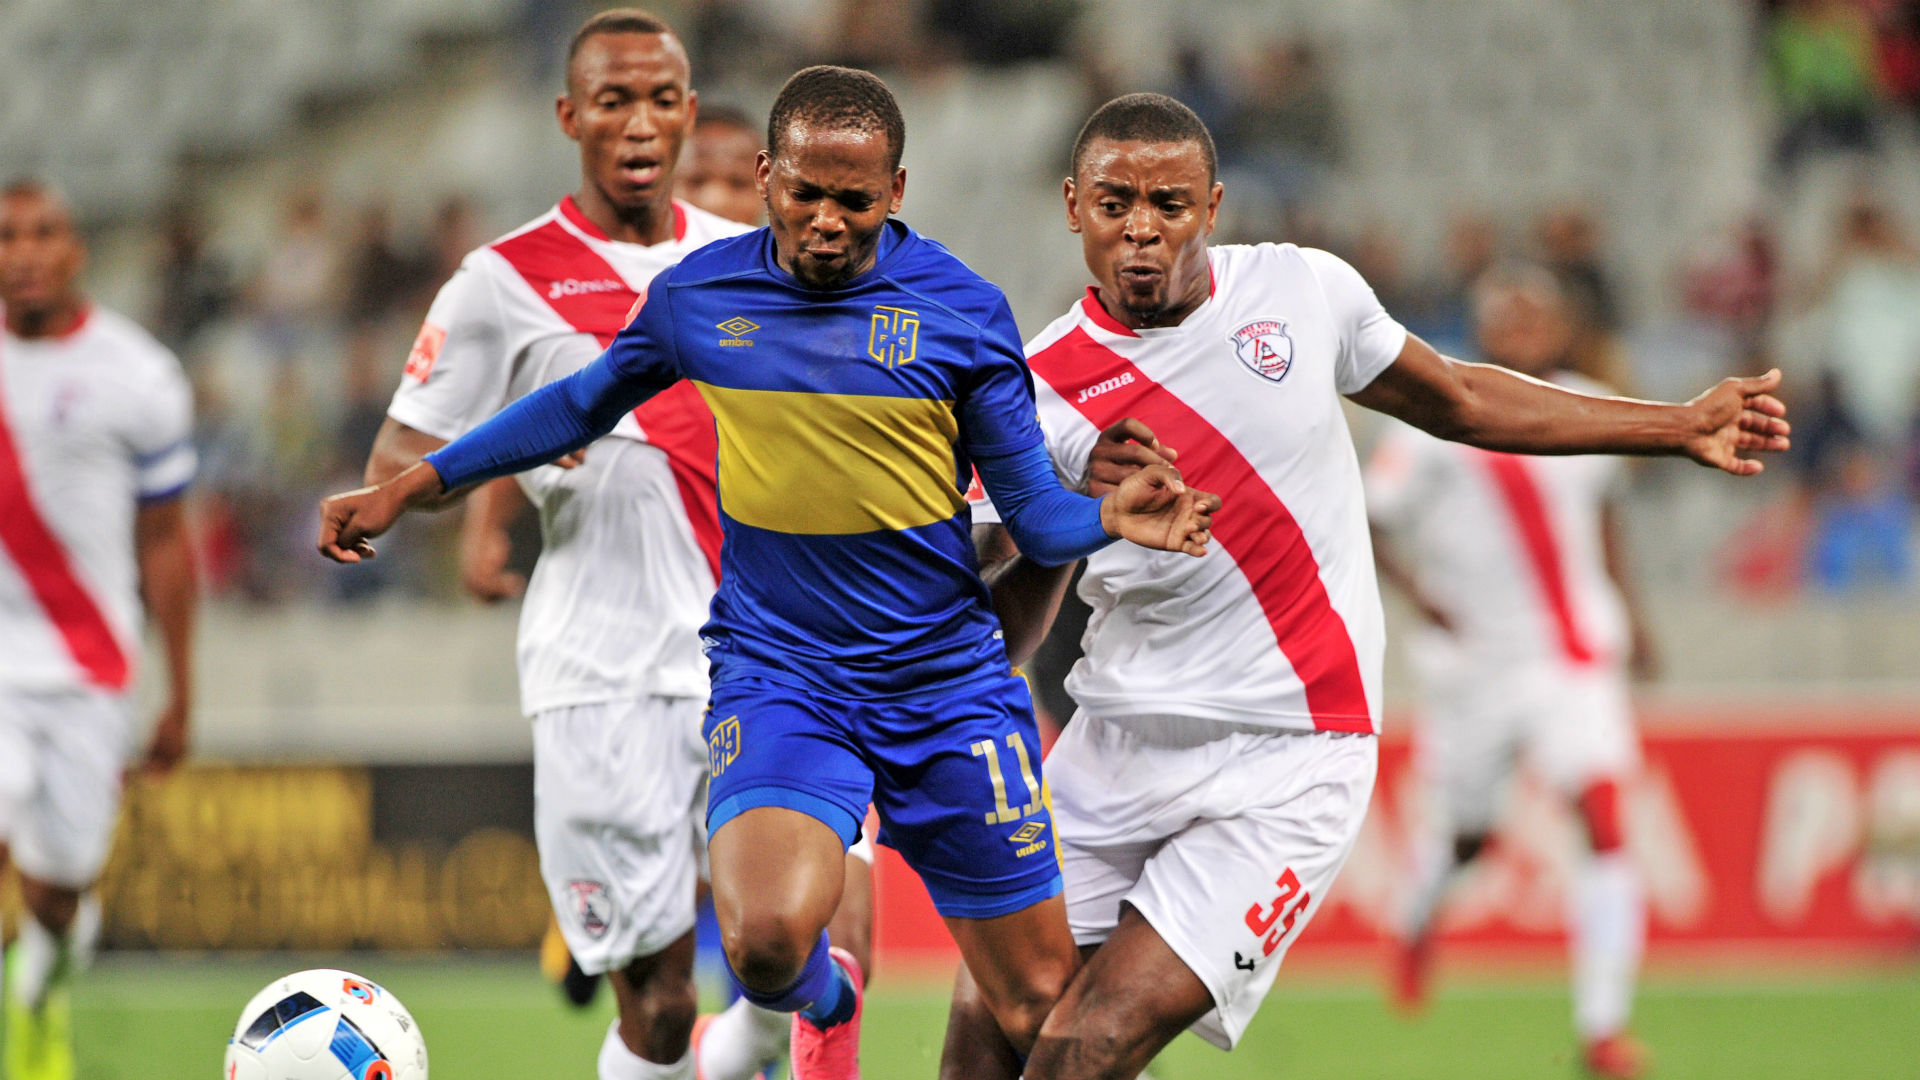 Cape Town City, Aubrey Ngoma & Free State Stars, Tamsanqa Teyise